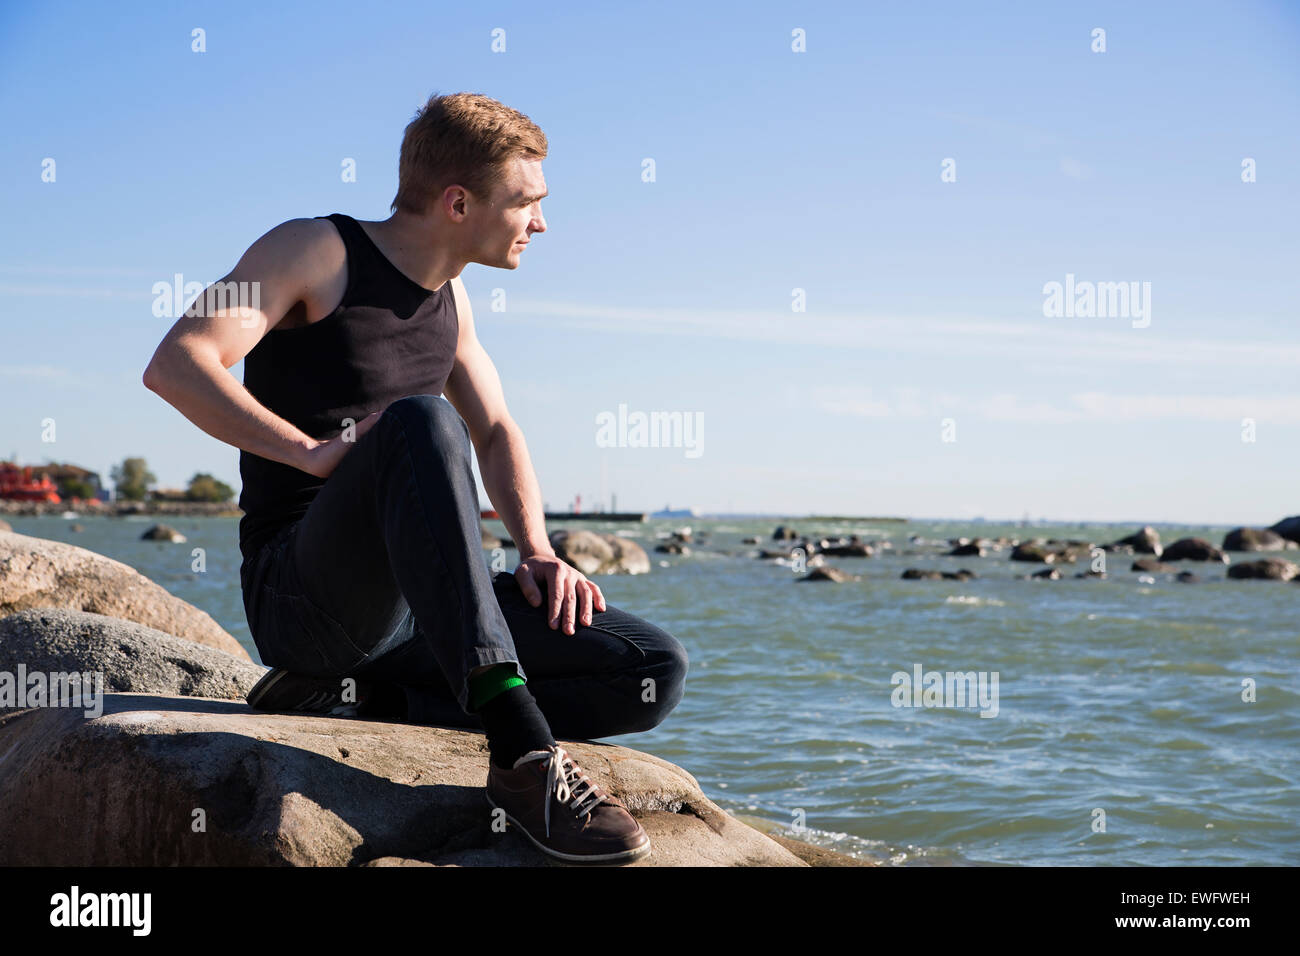 Focused serious man at the evening seaside - Stock Image